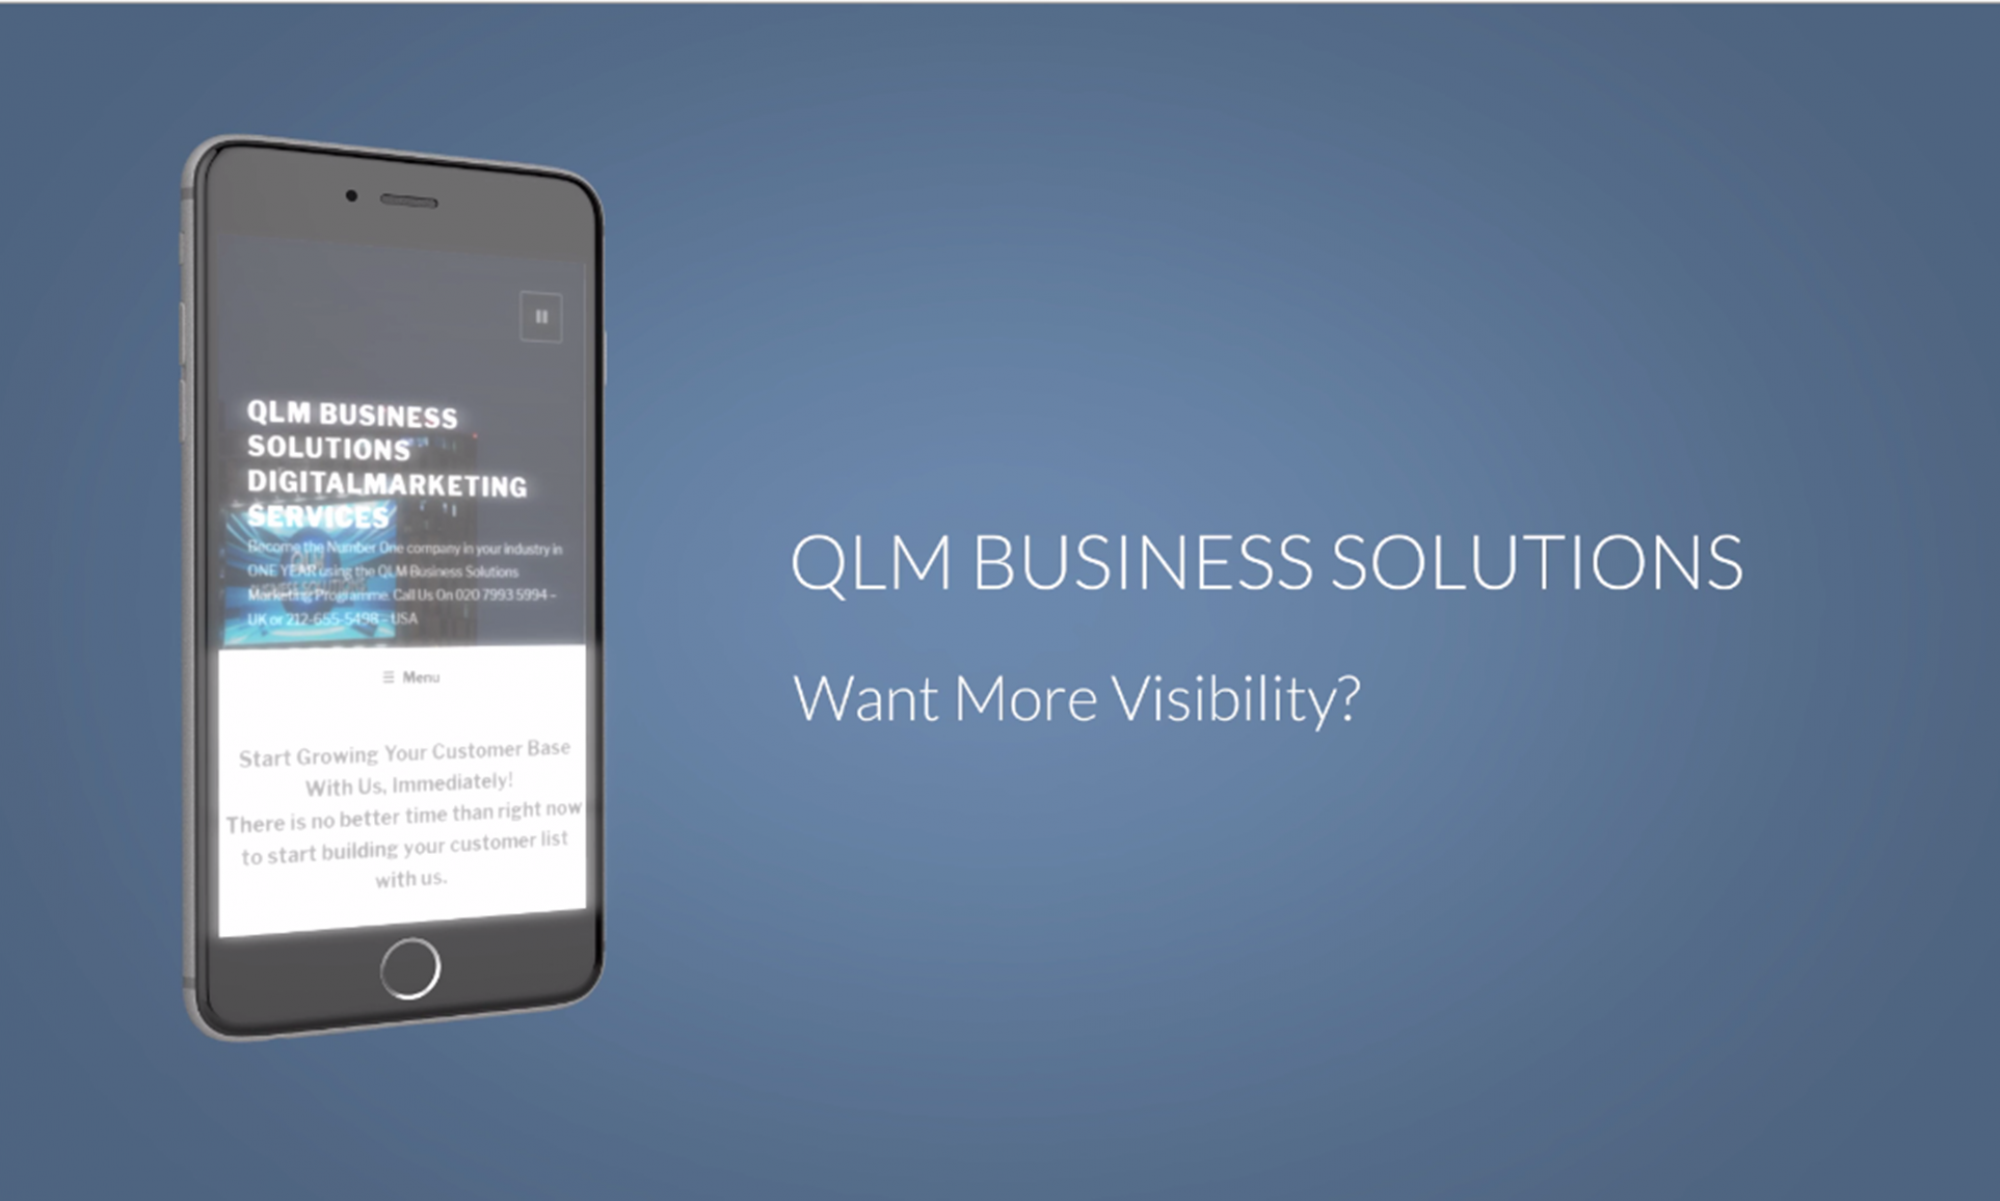 QLM Business Solutions DigitalMarketing Services